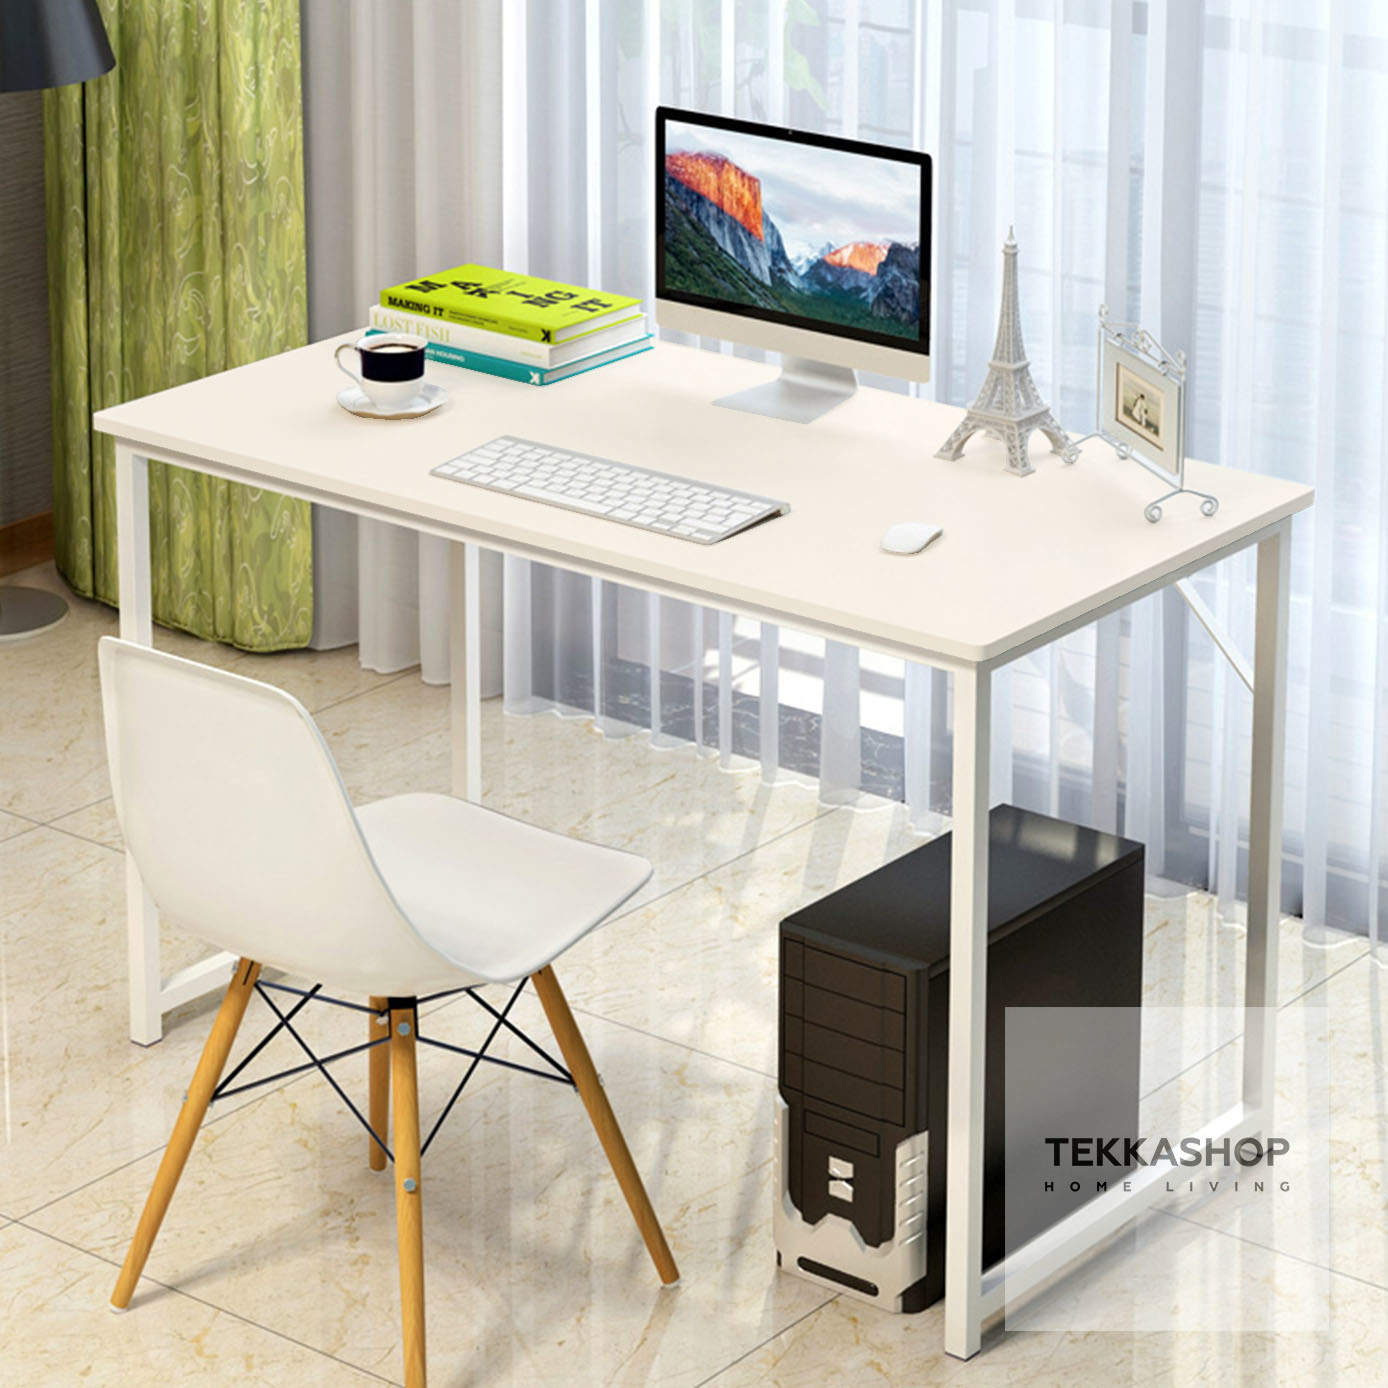 Tekka Gdot1358b Wooden Study Desk Laptop Table Home Office Working With Steel Legs 120cm X 55cm 90cm Beige